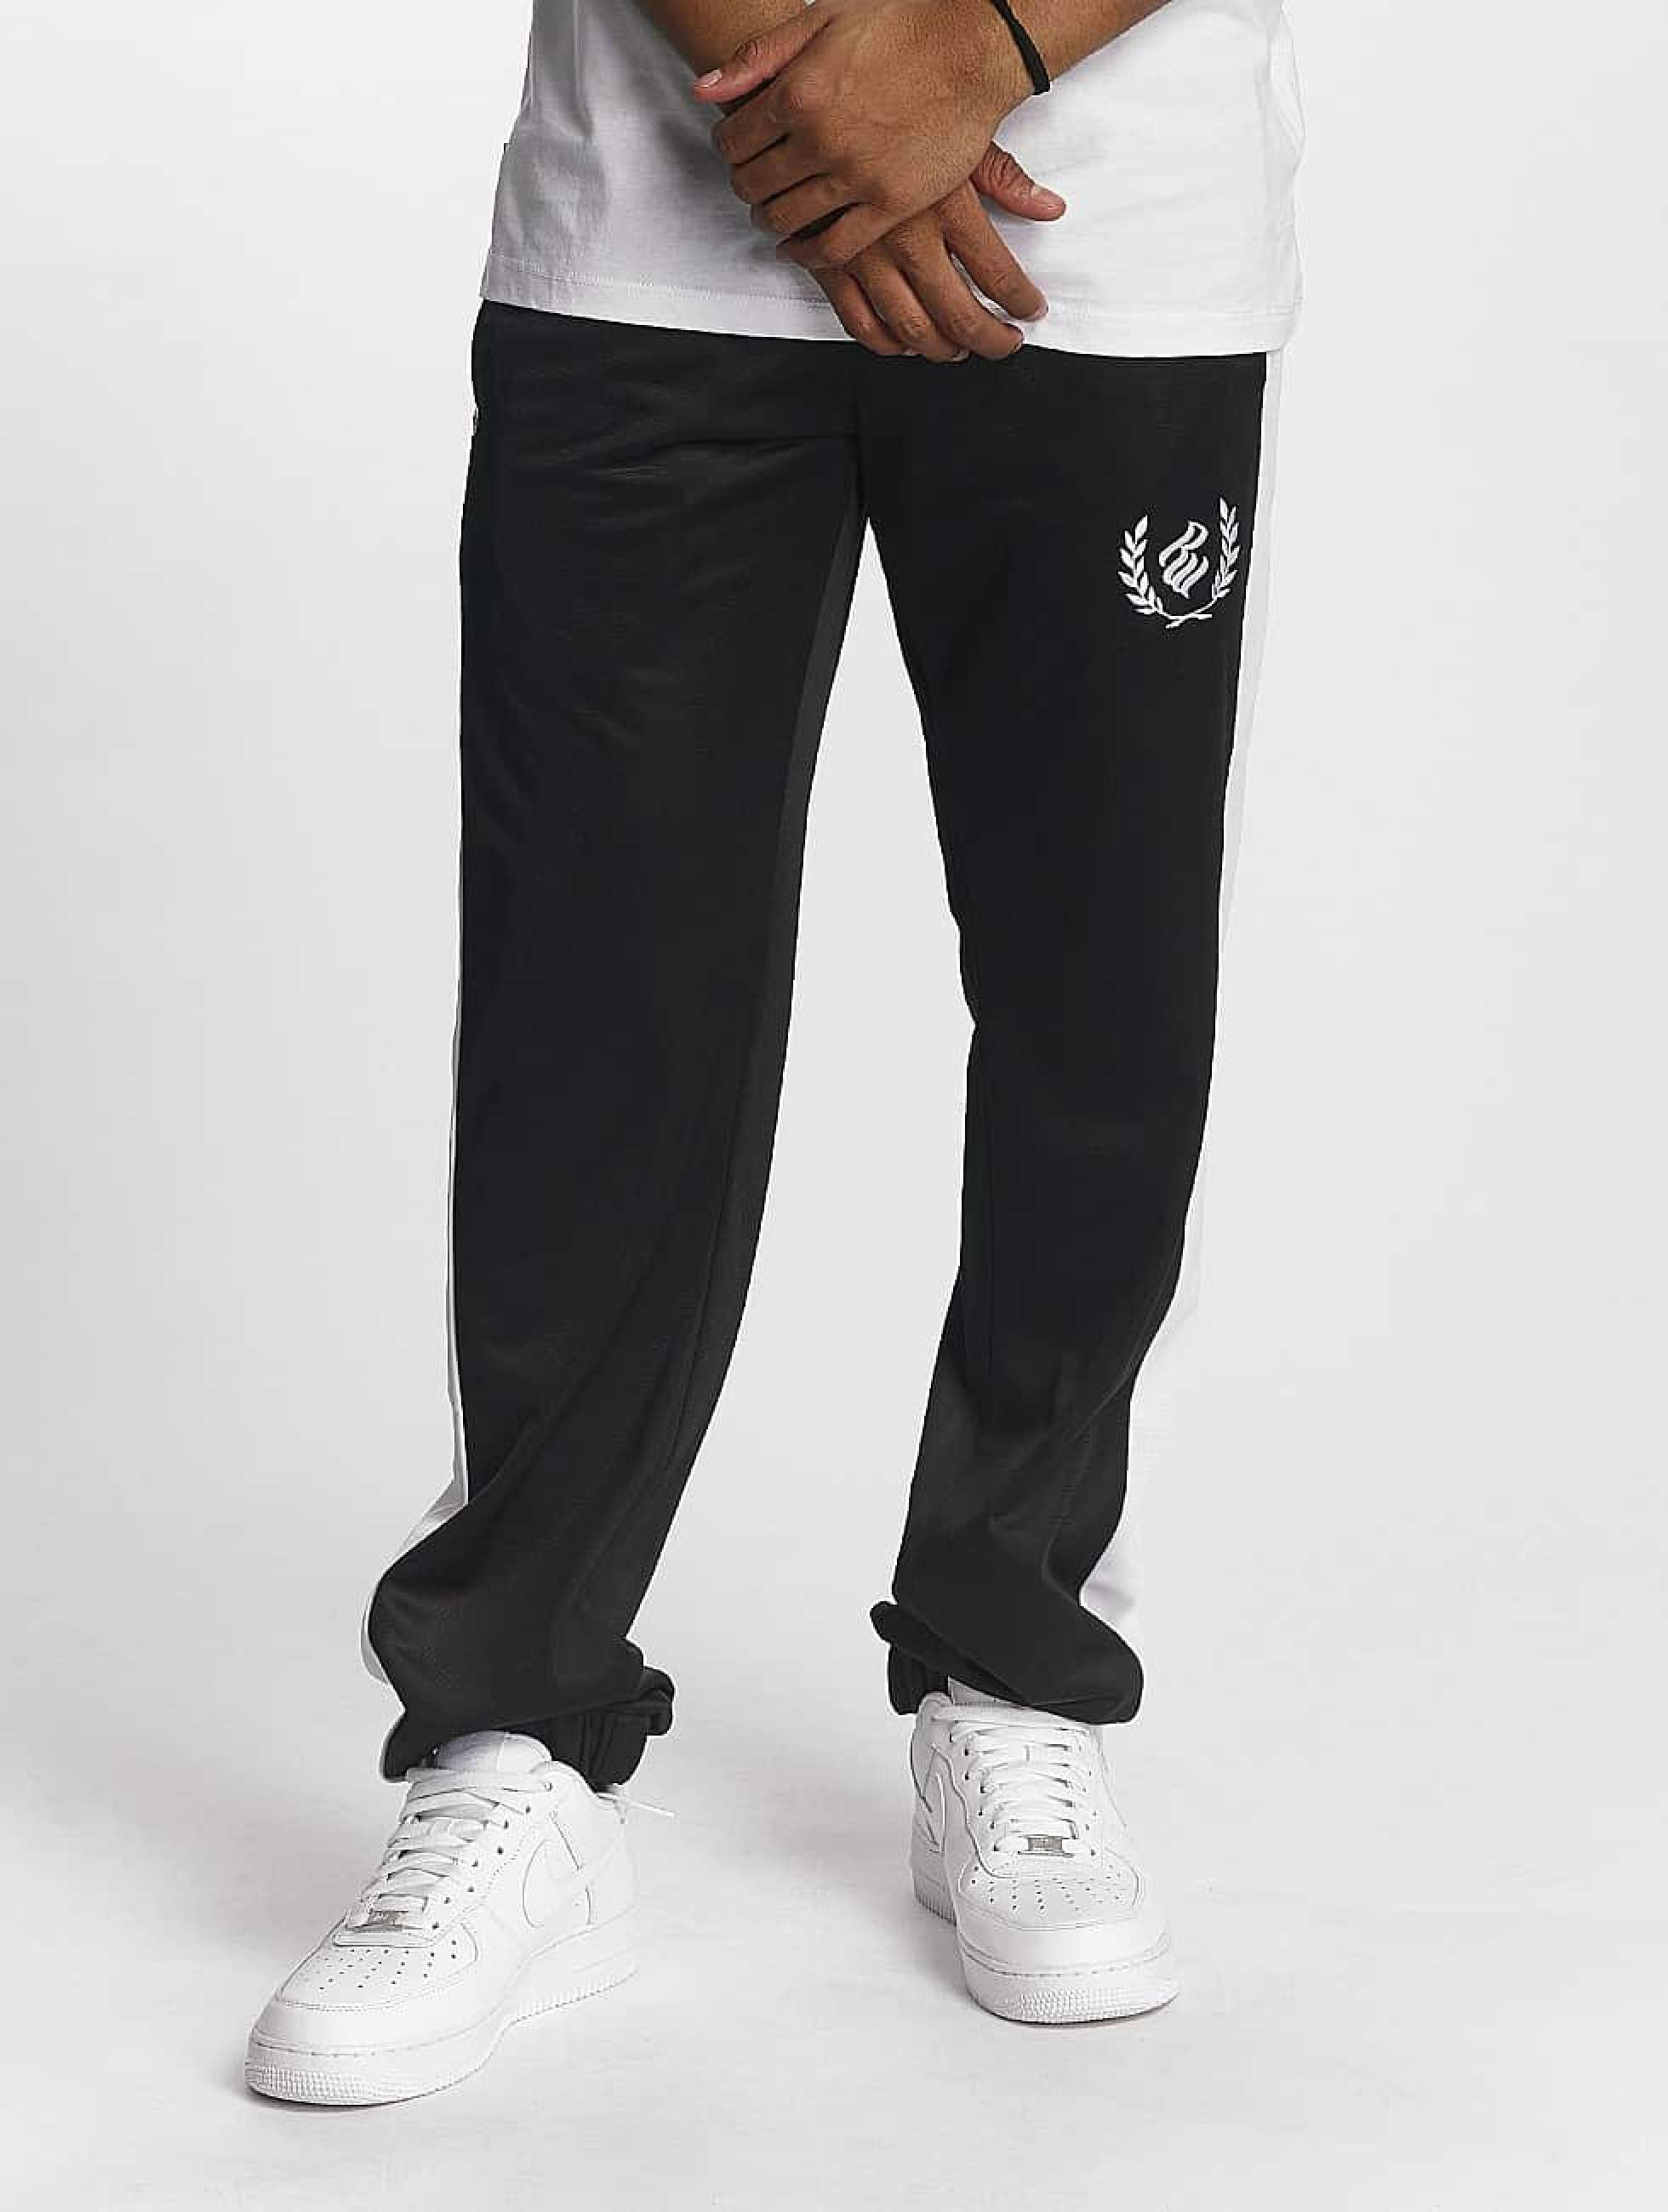 Rocawear / Sweat Pant Lisias in black 3XL